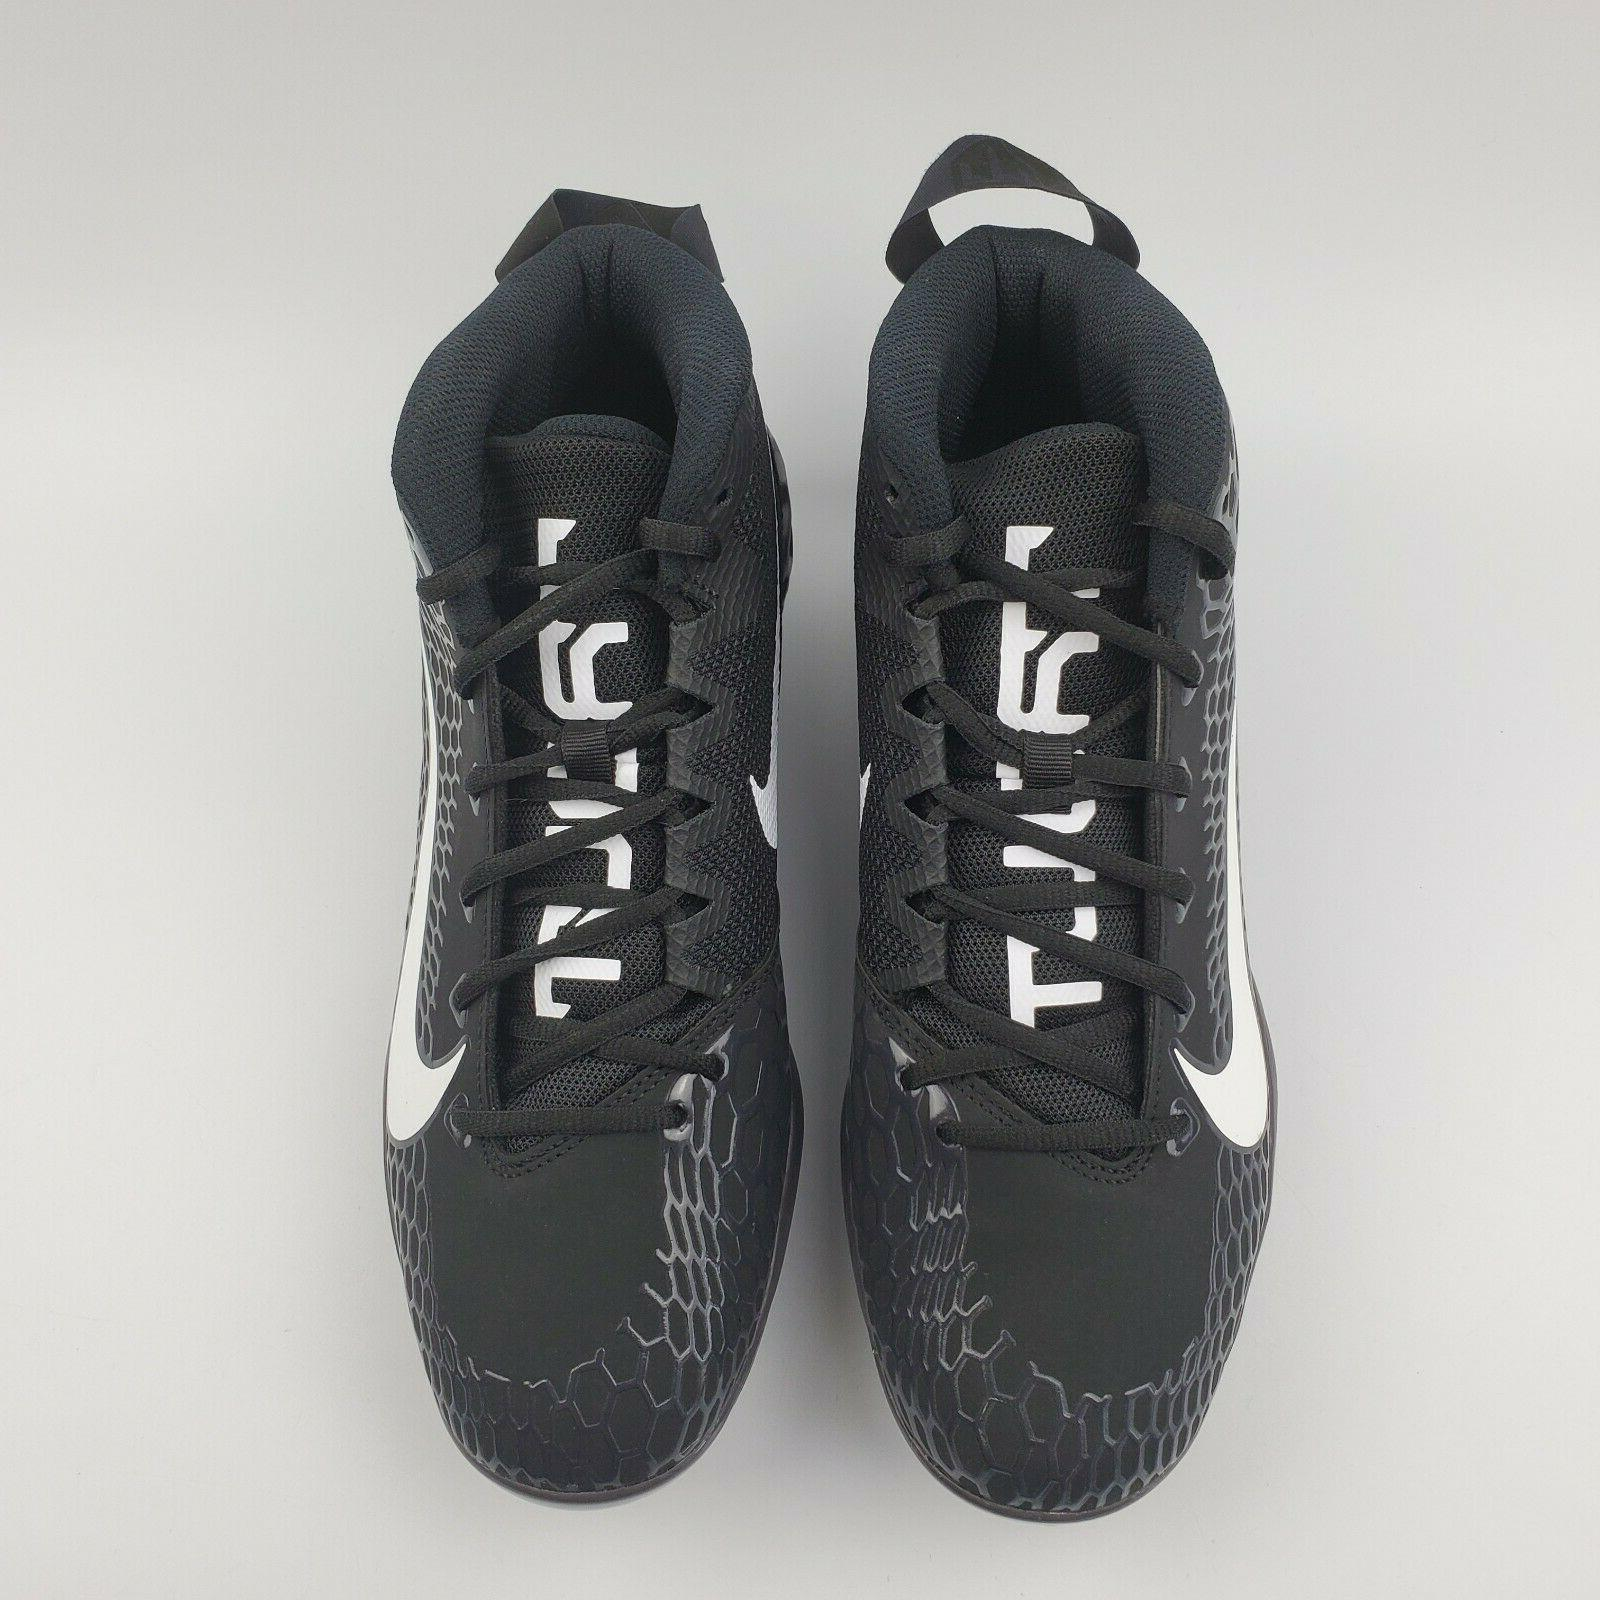 Nike 5 Cleats Size AH3372-010